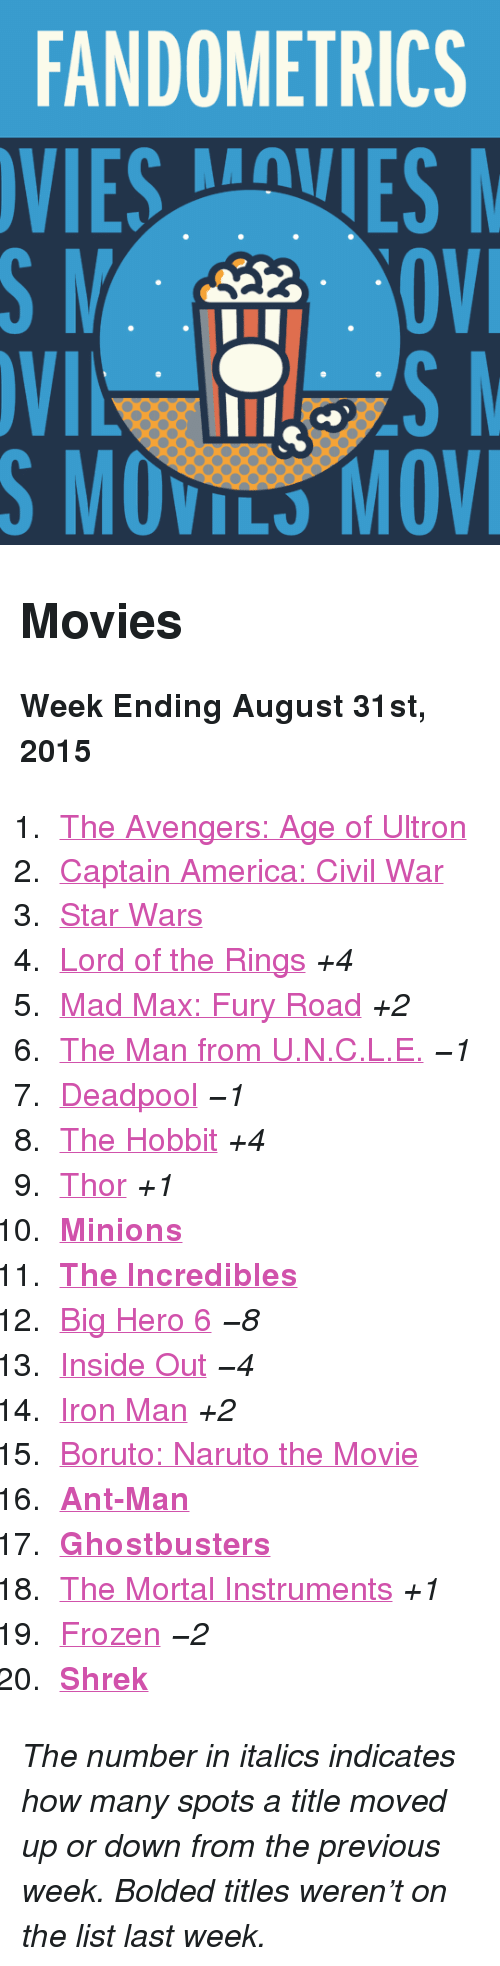 "ant man: FANDOMETRICS  VIESVES  S MOVILS MOV <h2>Movies</h2><p><b>Week Ending August 31st, 2015</b></p><ol><li><a href=""http://www.tumblr.com/search/age%20of%20ultron"">The Avengers: Age of Ultron</a></li>  <li><a href=""http://www.tumblr.com/search/captain%20america%20civil%20war"">Captain America: Civil War</a></li>  <li><a href=""http://www.tumblr.com/search/star%20wars"">Star Wars</a></li>  <li><a href=""http://www.tumblr.com/search/lotr"">Lord of the Rings</a> <i>+4</i></li>  <li><a href=""http://www.tumblr.com/search/mad%20max"">Mad Max: Fury Road</a> <i>+2</i></li>  <li><a href=""http://www.tumblr.com/search/the%20man%20from%20uncle"">The Man from U.N.C.L.E.</a> <i>−1</i></li>  <li><a href=""http://www.tumblr.com/search/deadpool"">Deadpool</a> <i>−1</i></li>  <li><a href=""http://www.tumblr.com/search/the%20hobbit"">The Hobbit</a> <i>+4</i></li>  <li><a href=""http://www.tumblr.com/search/thor"">Thor</a> <i>+1</i></li>  <li><a href=""http://www.tumblr.com/search/minions""><b>Minions</b></a></li>  <li><a href=""http://www.tumblr.com/search/the%20incredibles""><b>The Incredibles</b></a></li>  <li><a href=""http://www.tumblr.com/search/big%20hero%206"">Big Hero 6</a> <i>−8</i></li>  <li><a href=""http://www.tumblr.com/search/inside%20out"">Inside Out</a> <i>−4</i></li>  <li><a href=""http://www.tumblr.com/search/iron%20man"">Iron Man</a> <i>+2</i></li>  <li><a href=""http://www.tumblr.com/search/boruto%20the%20movie"">Boruto: Naruto the Movie</a> </li>  <li><a href=""http://www.tumblr.com/search/ant%20man""><b>Ant-Man</b></a></li>  <li><a href=""http://www.tumblr.com/search/ghostbusters""><b>Ghostbusters</b></a></li>  <li><a href=""http://www.tumblr.com/search/the%20mortal%20instruments"">The Mortal Instruments</a> <i>+1</i></li>  <li><a href=""http://www.tumblr.com/search/frozen"">Frozen</a> <i>−2</i></li>  <li><a href=""http://www.tumblr.com/search/shrek""><b>Shrek</b></a></li></ol><p><i>The number in italics indicates how many spots a title moved up or down from the previous week. Bolded titles weren't on the list last week.</i></p>"